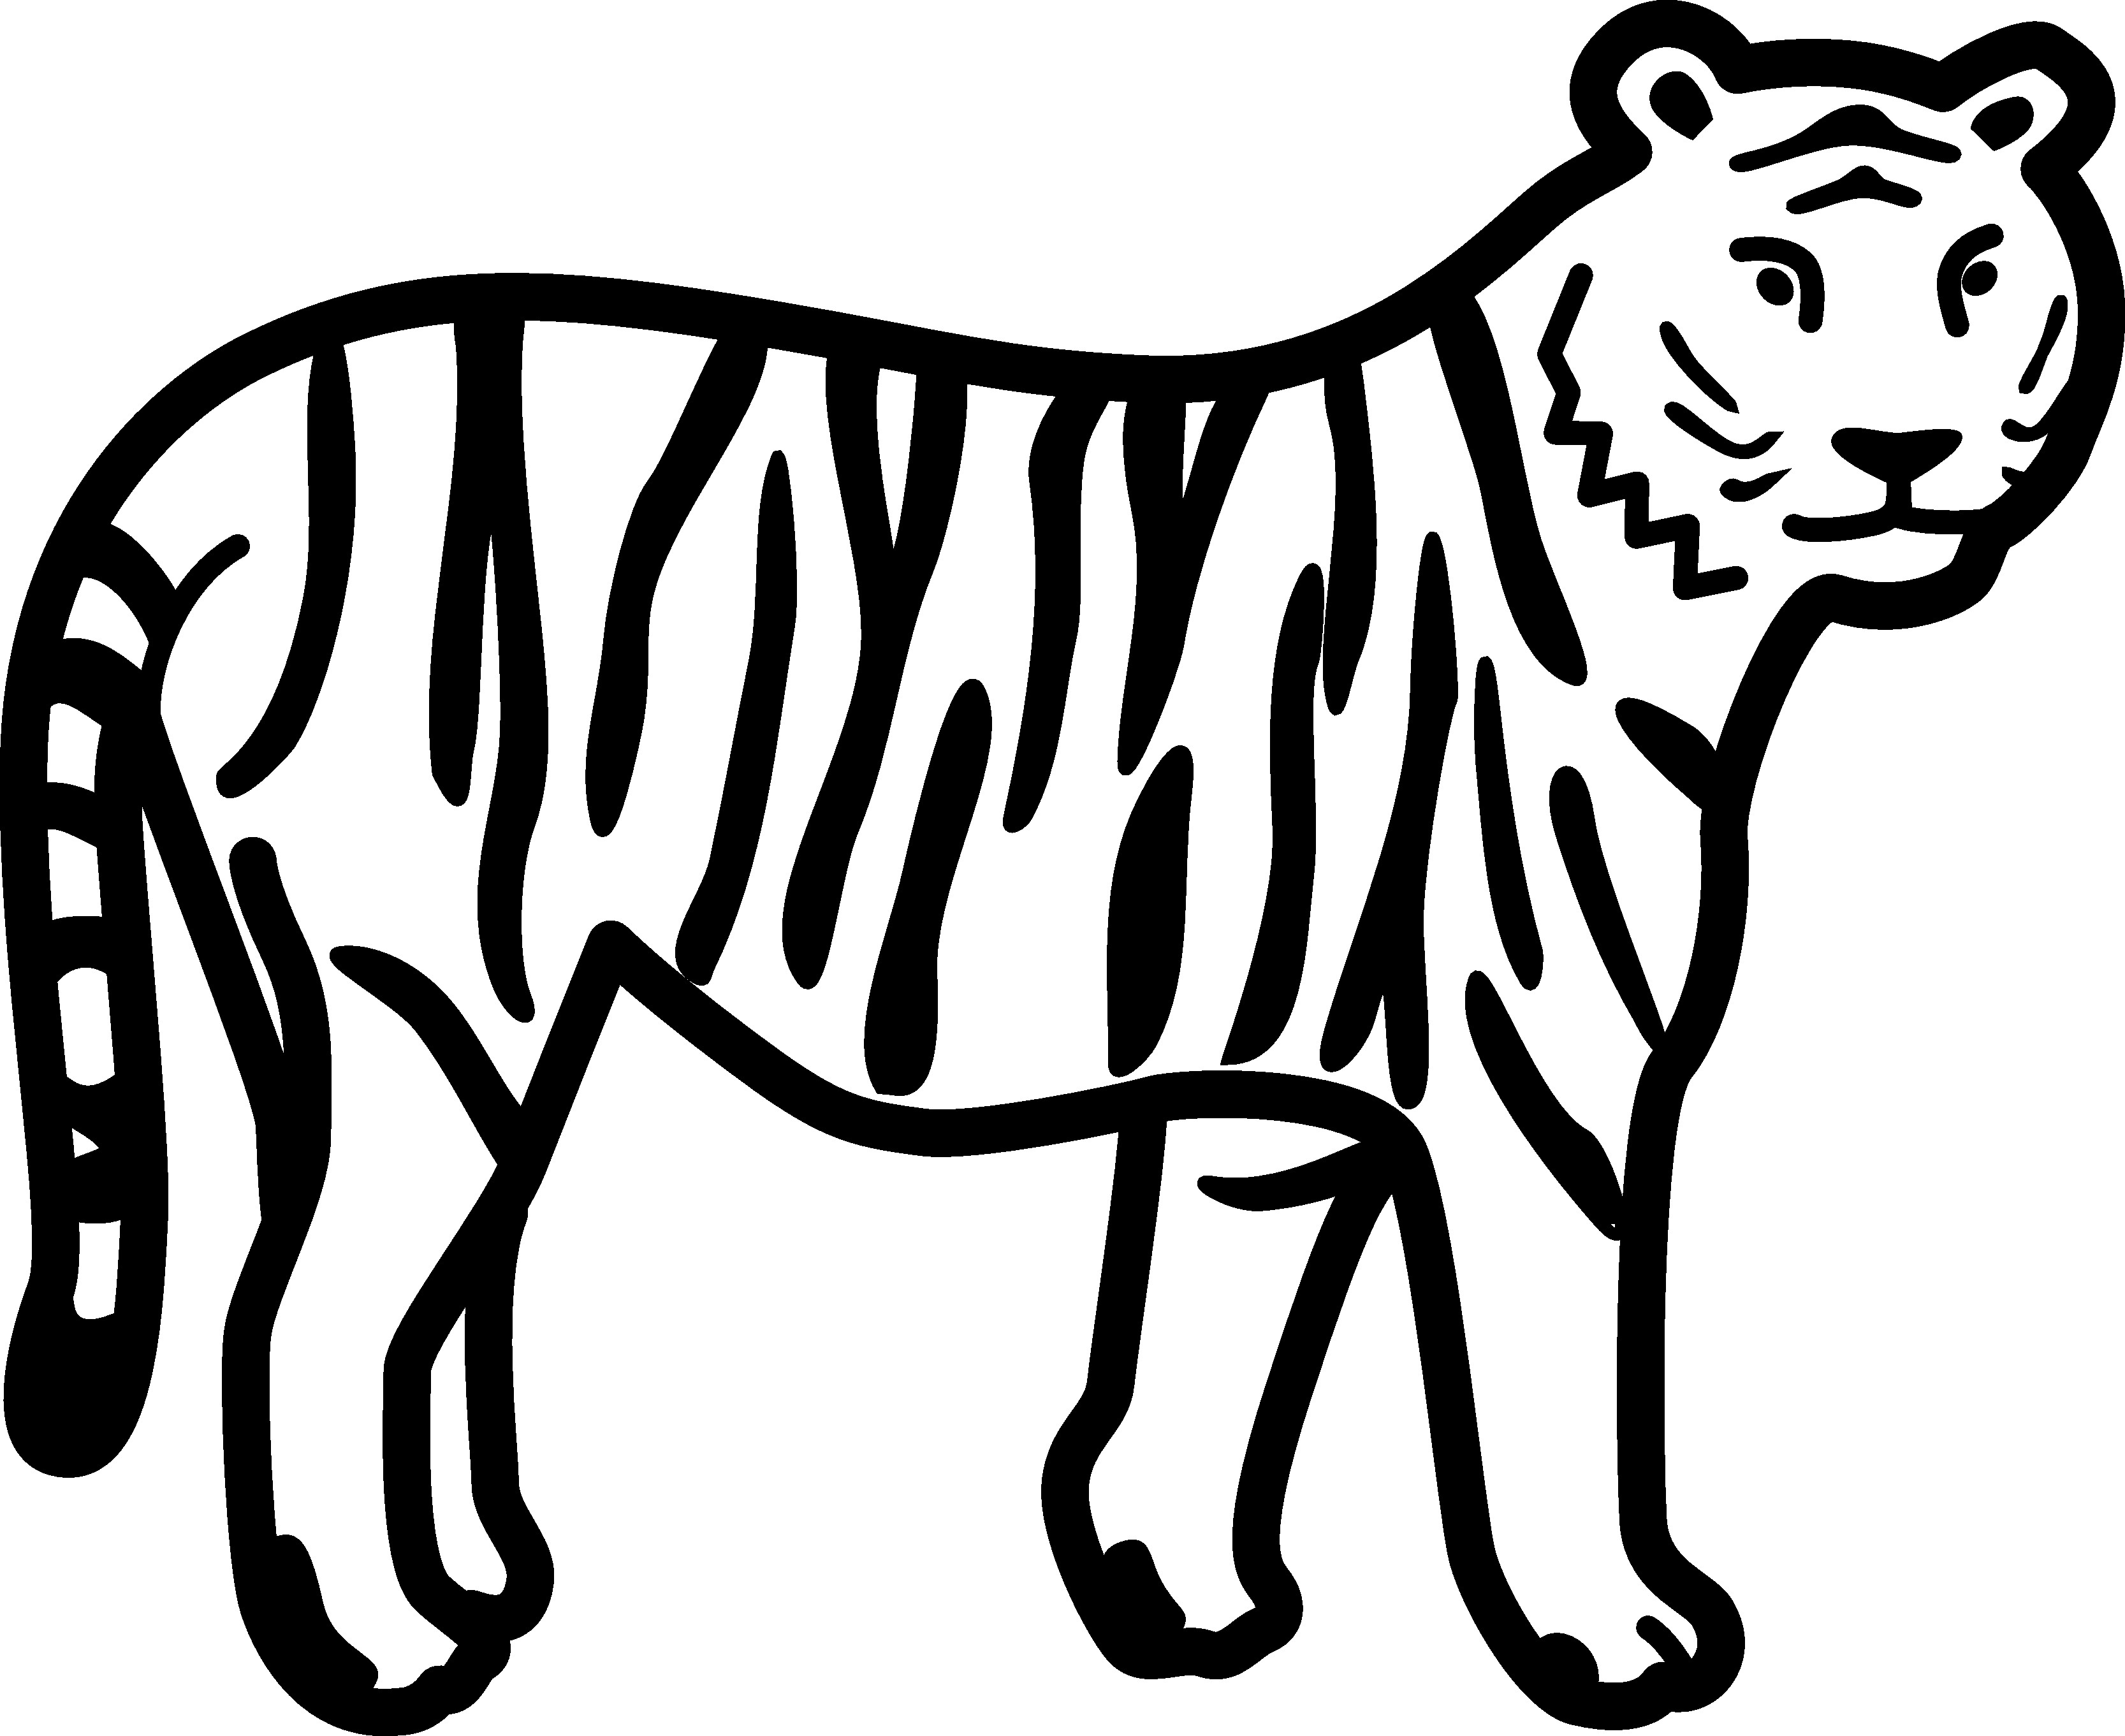 For Black N White Animals In Clipart Vector Illustration Drawn Style.